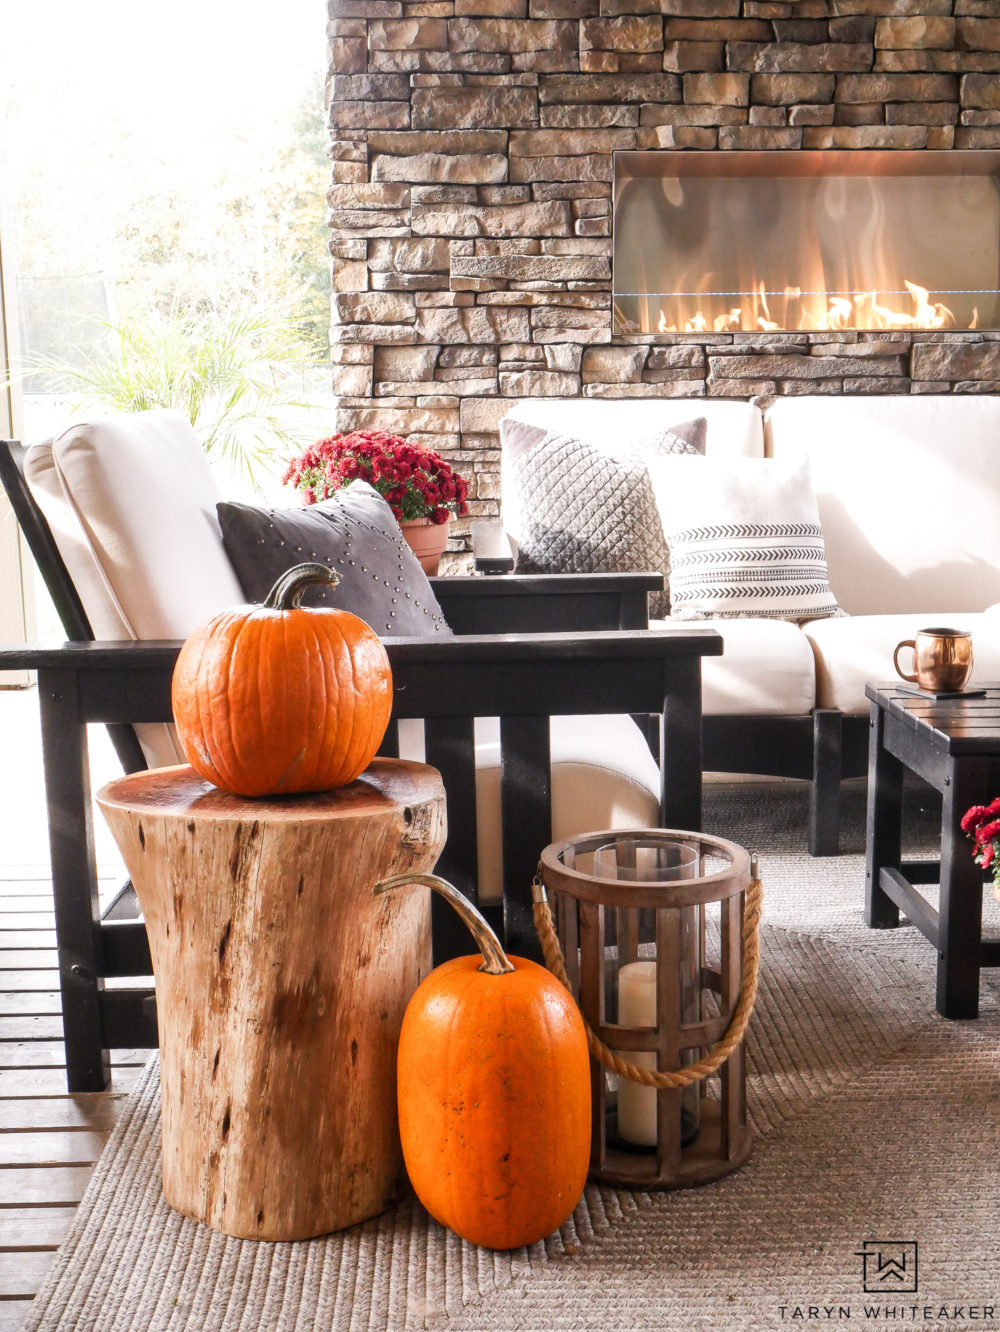 Decorating an outdoor living space for fall with pops of orange pumpkins and red mums.